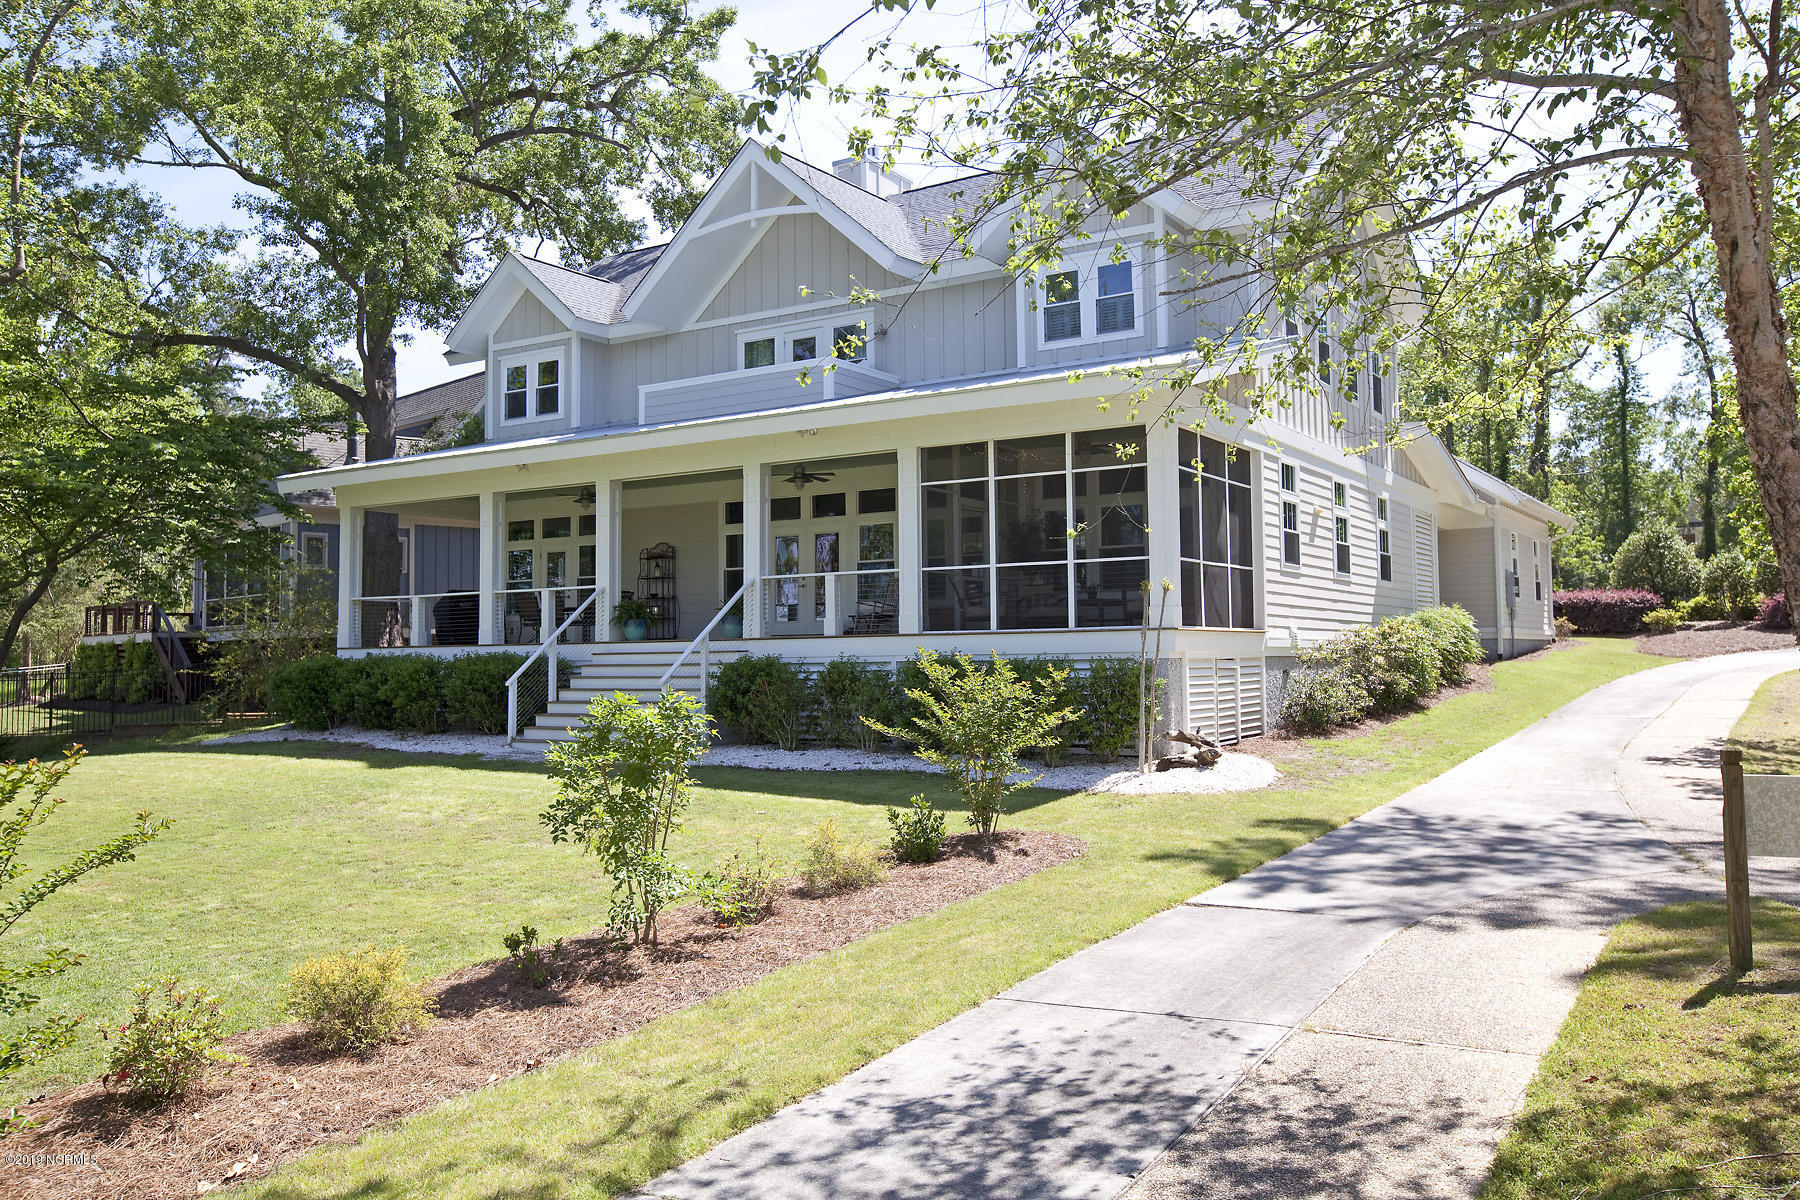 120 Brookhaven Trail, Leland, North Carolina 28451, 5 Bedrooms Bedrooms, 11 Rooms Rooms,4 BathroomsBathrooms,Residential,For Sale,Brookhaven,100161074